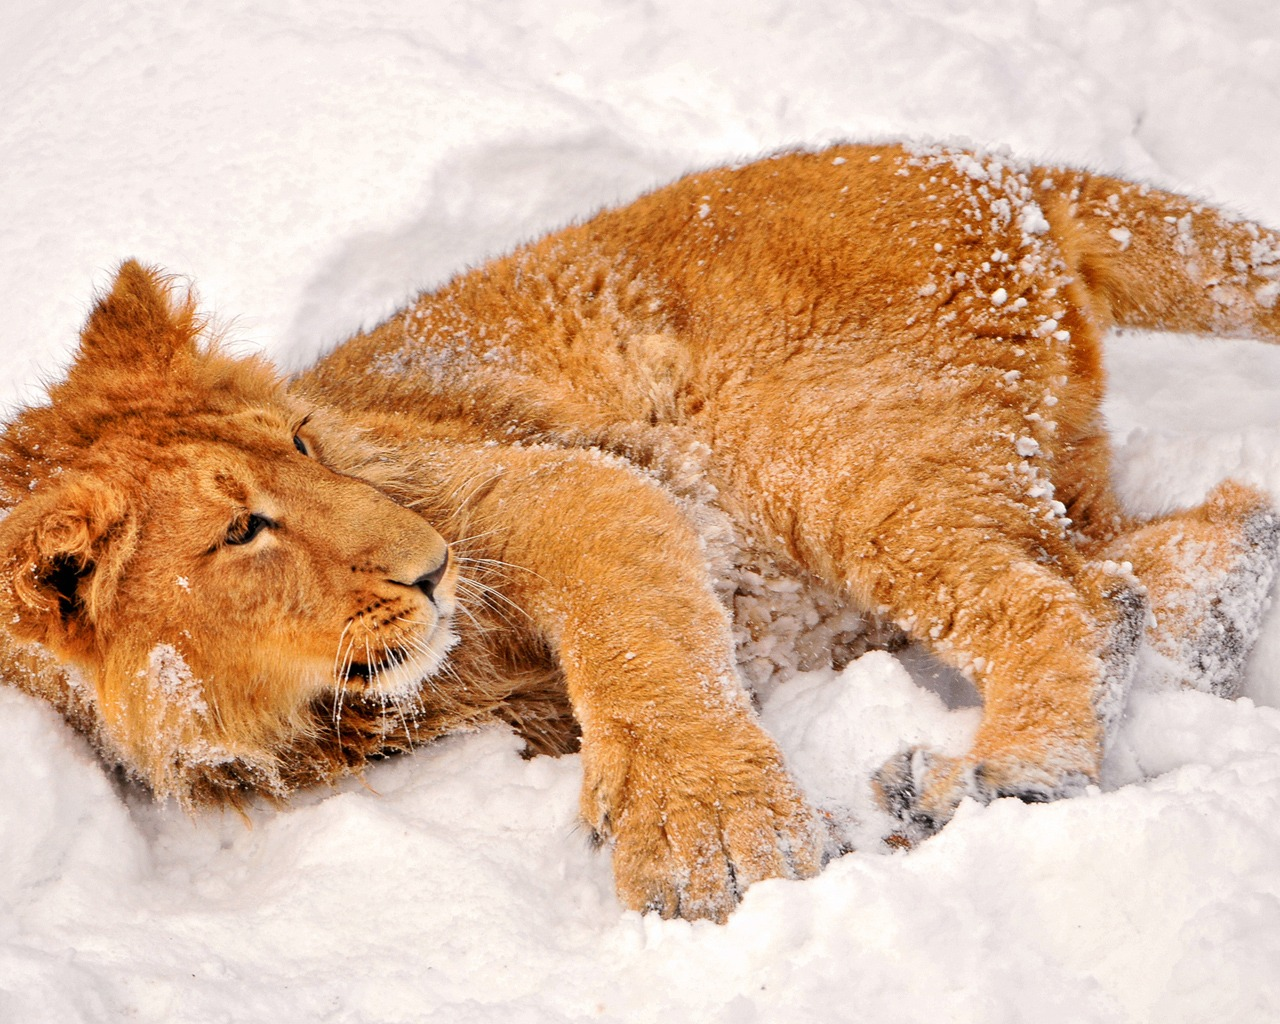 animals on winter wallpaper 4 animals on winter wallpaper 5 1280x1024